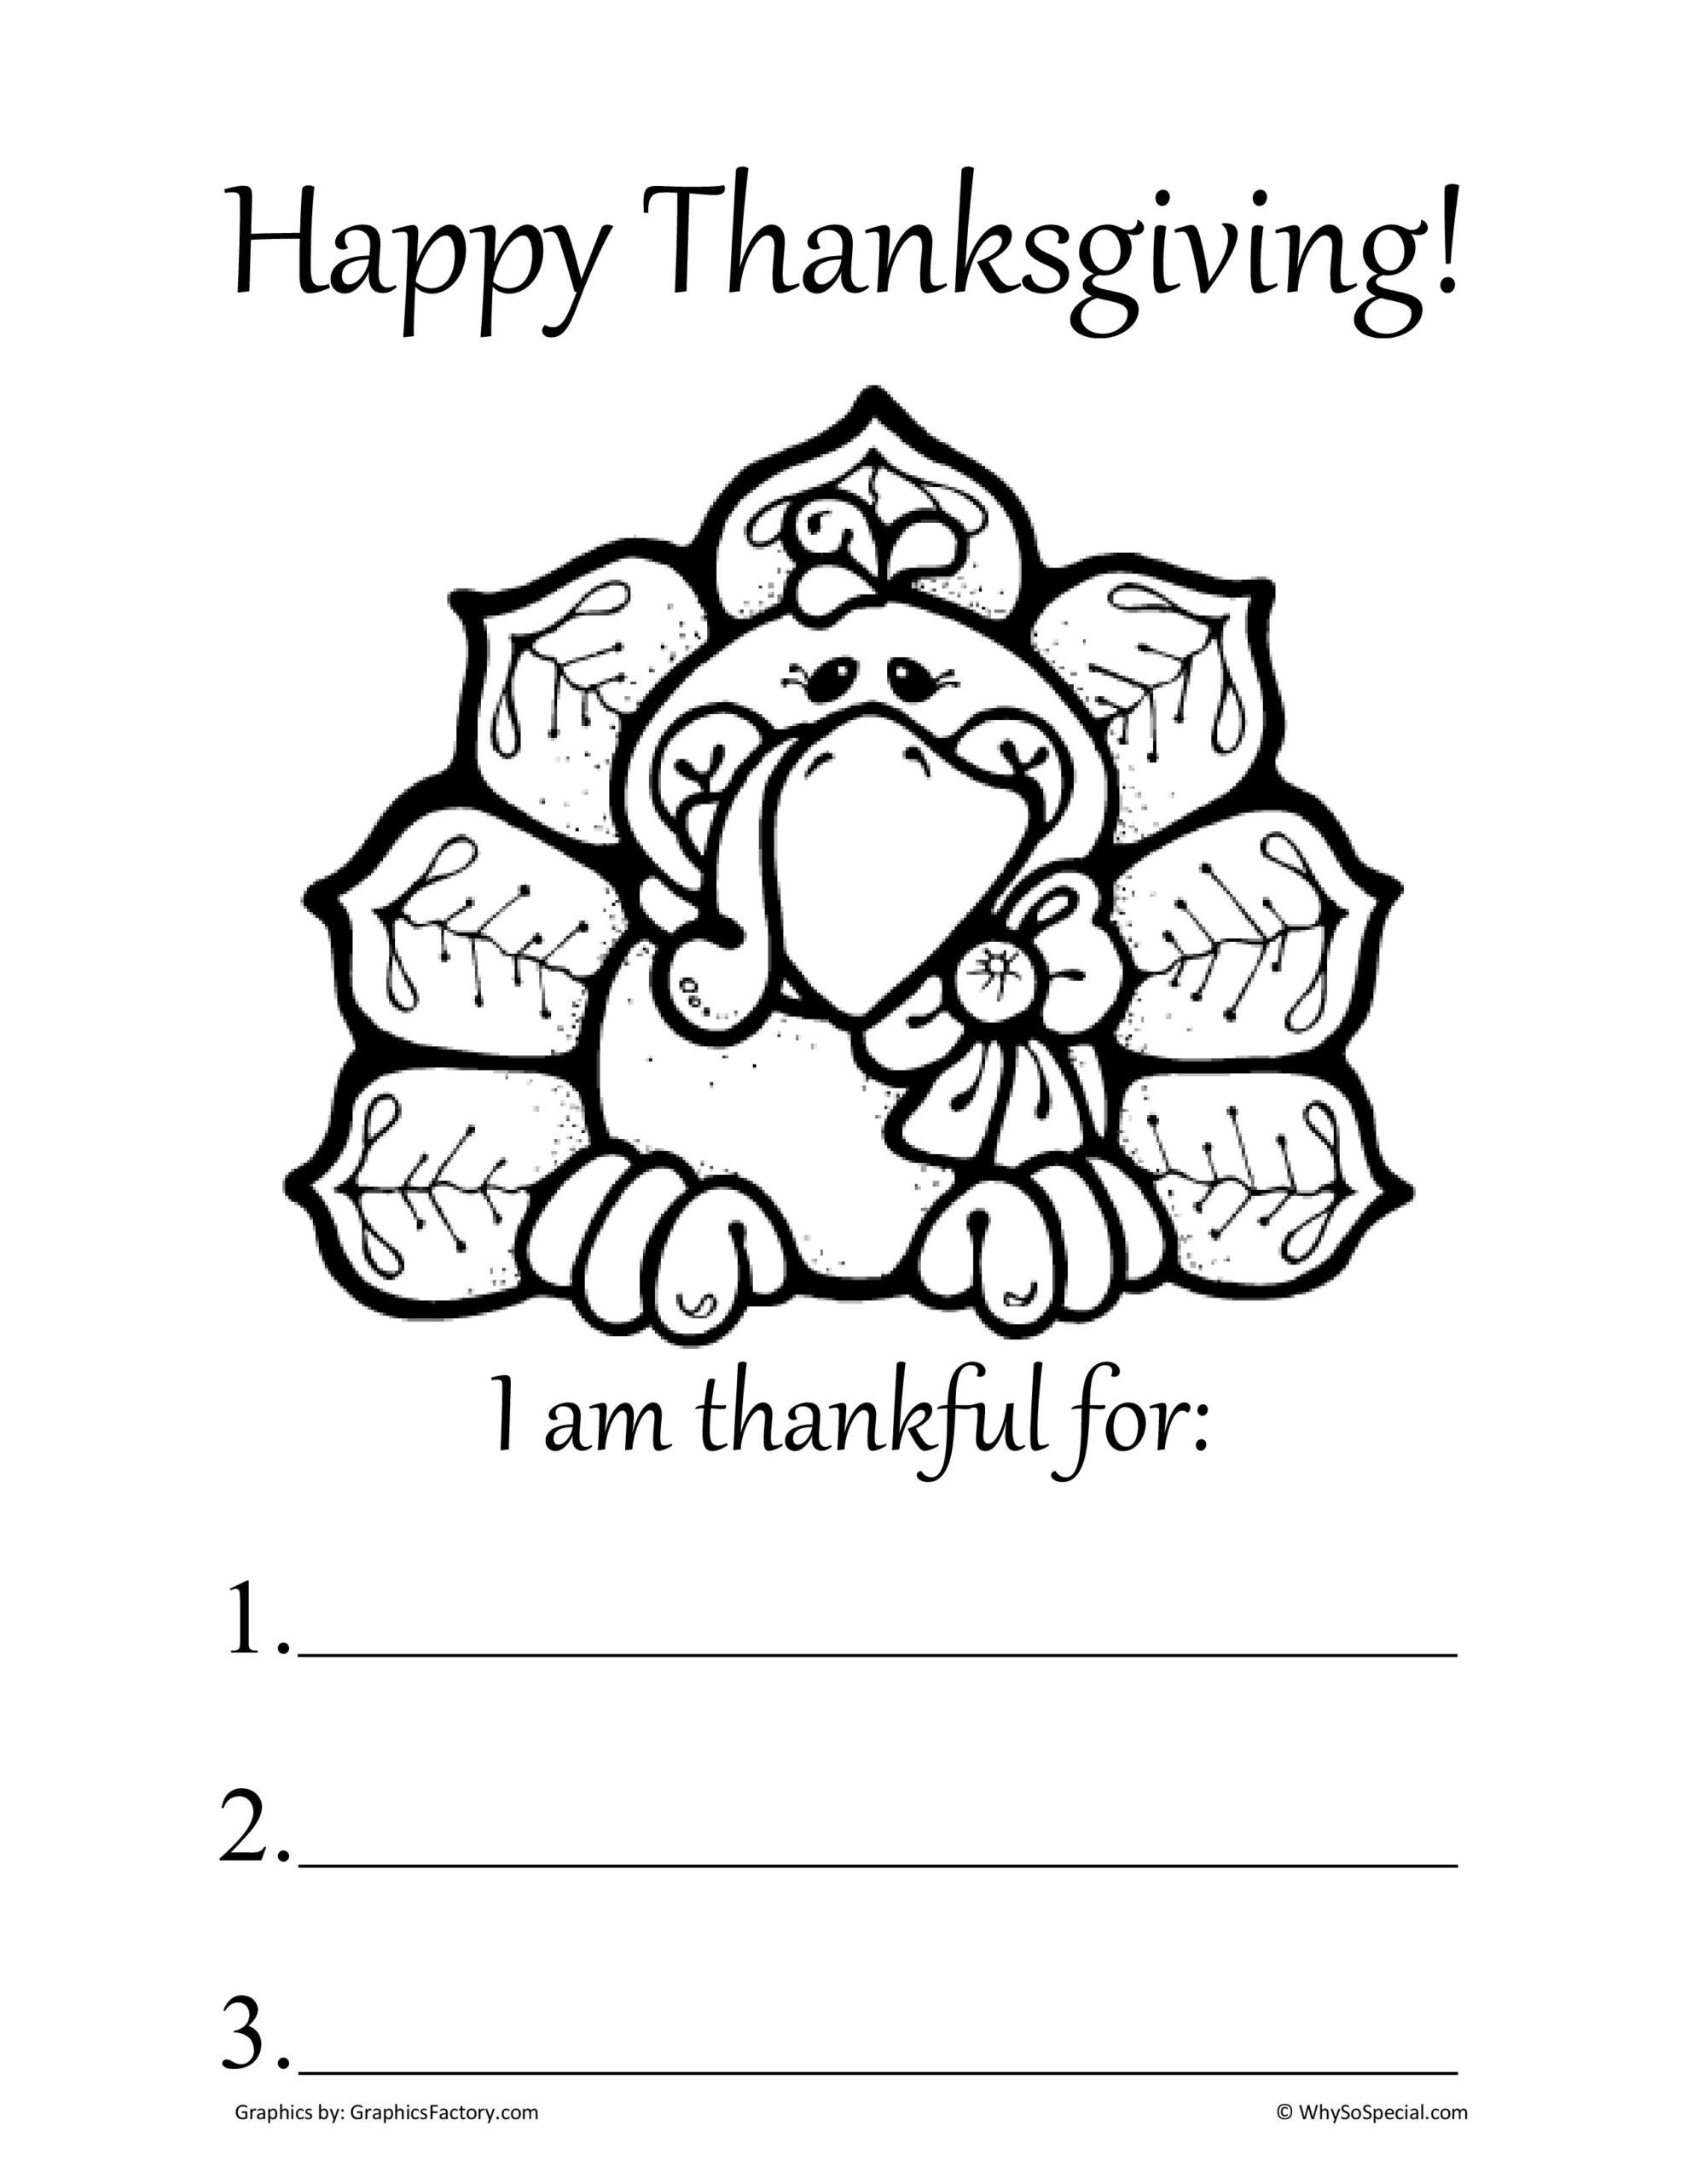 Thanksgiving Math Worksheets 5th Grade Baltrop 5th Grade Summer Worksheets 1st Math Problems